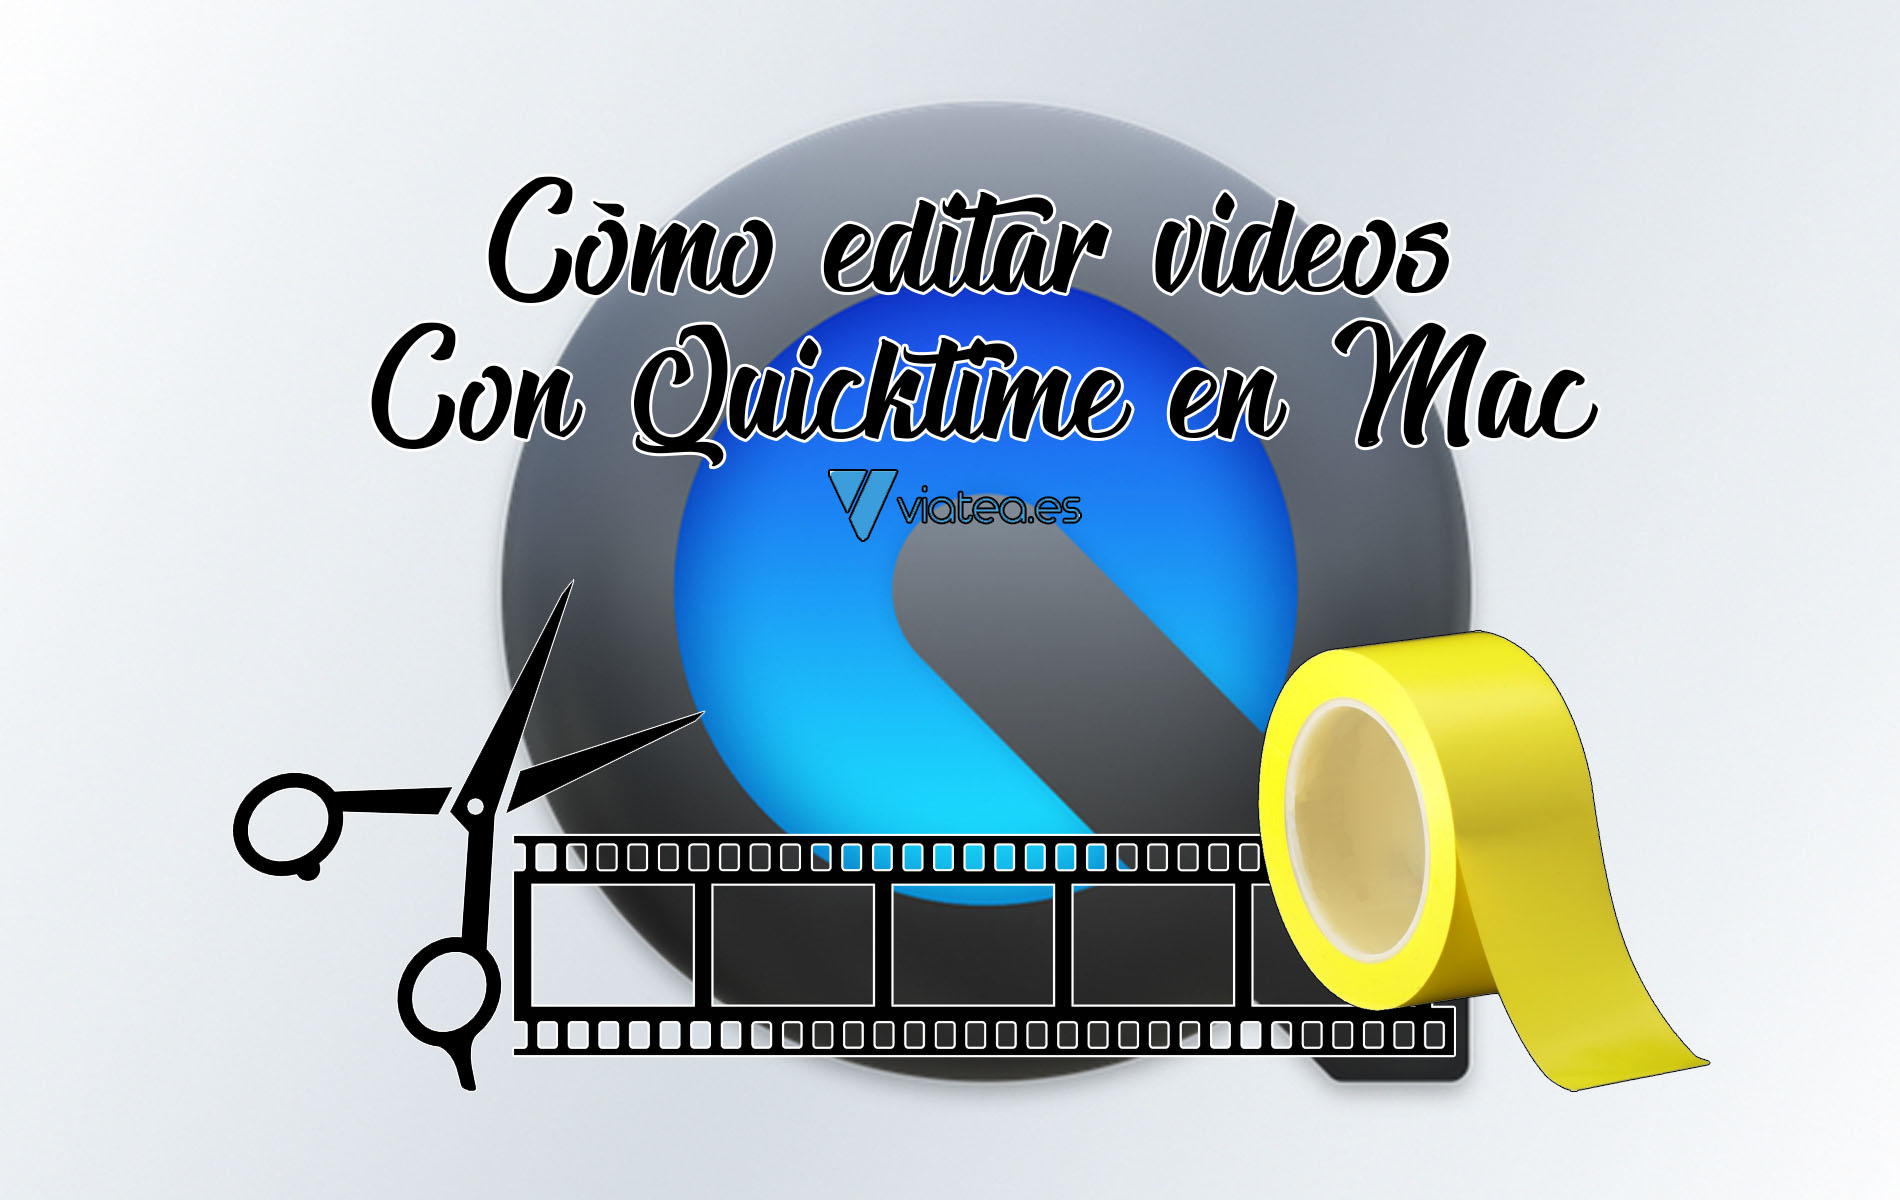 Cómo editar videos con Quicktime en Mac